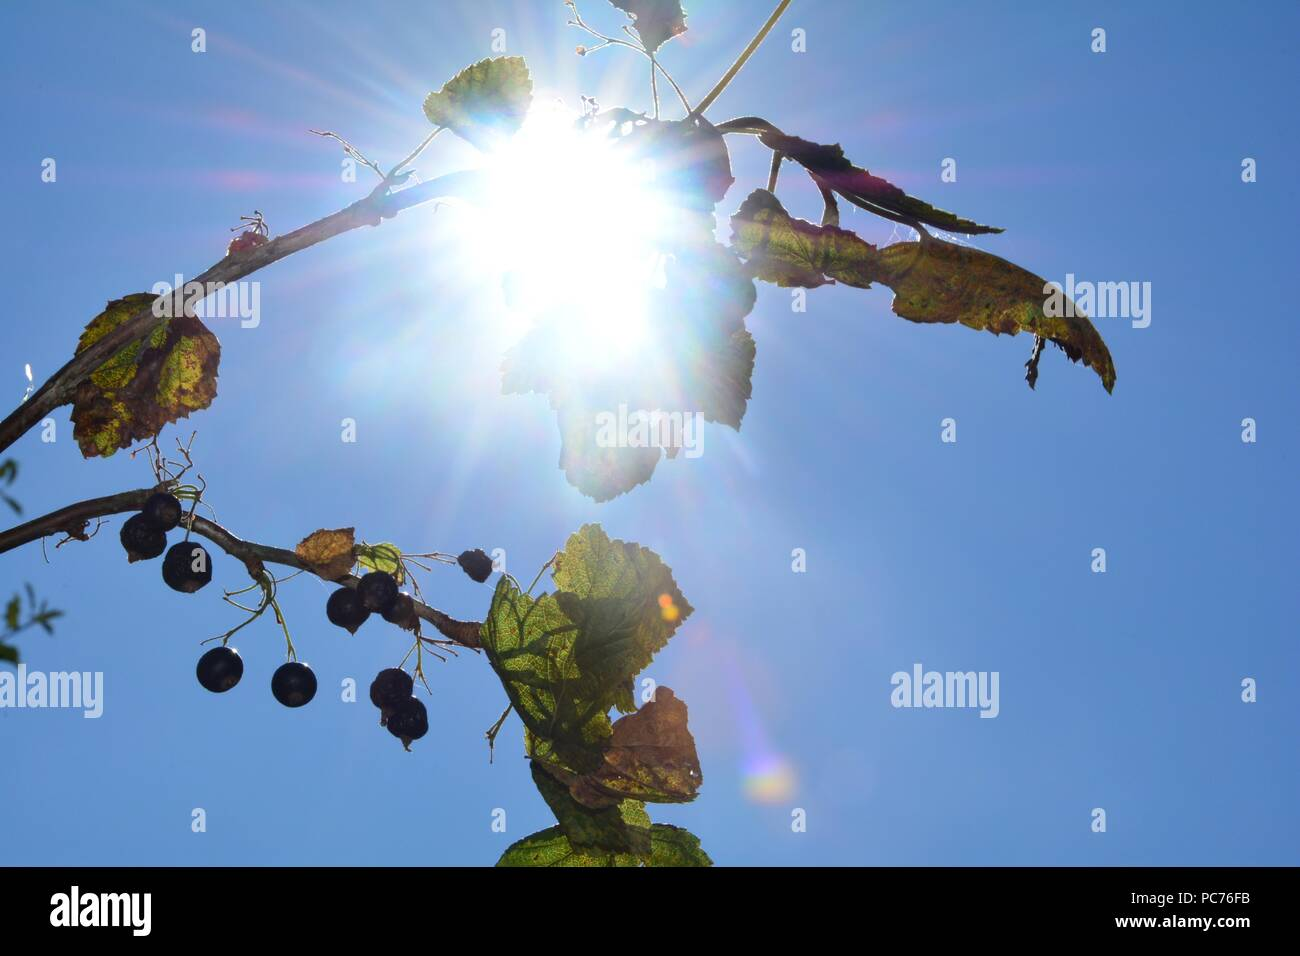 Black dried berries with brown leaves on the branch in front of blue sky with sunrays - Stock Image